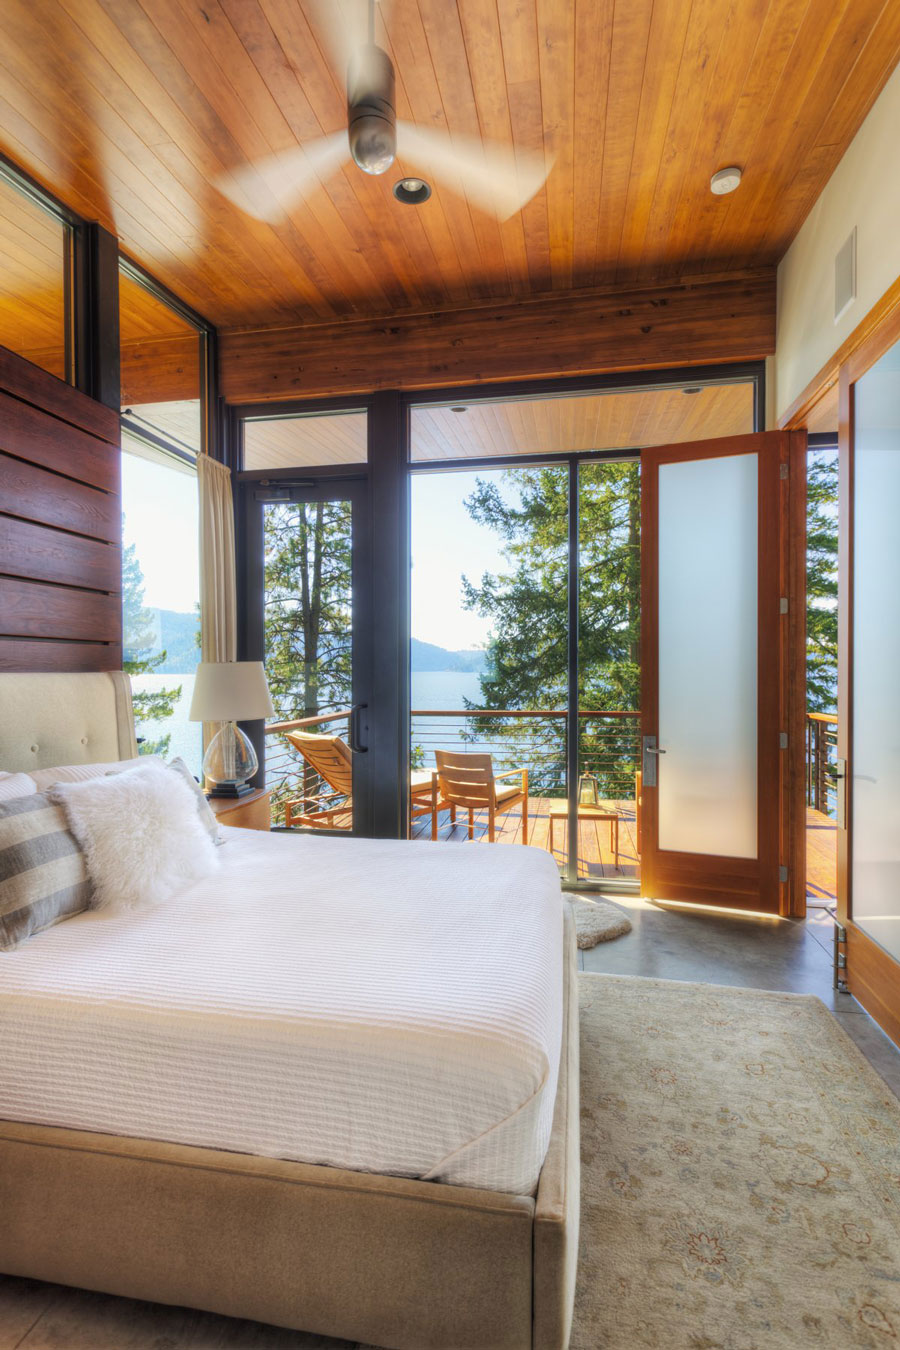 Bedroom, Balcony, Modern Lakefront Cabin in Idaho, USA